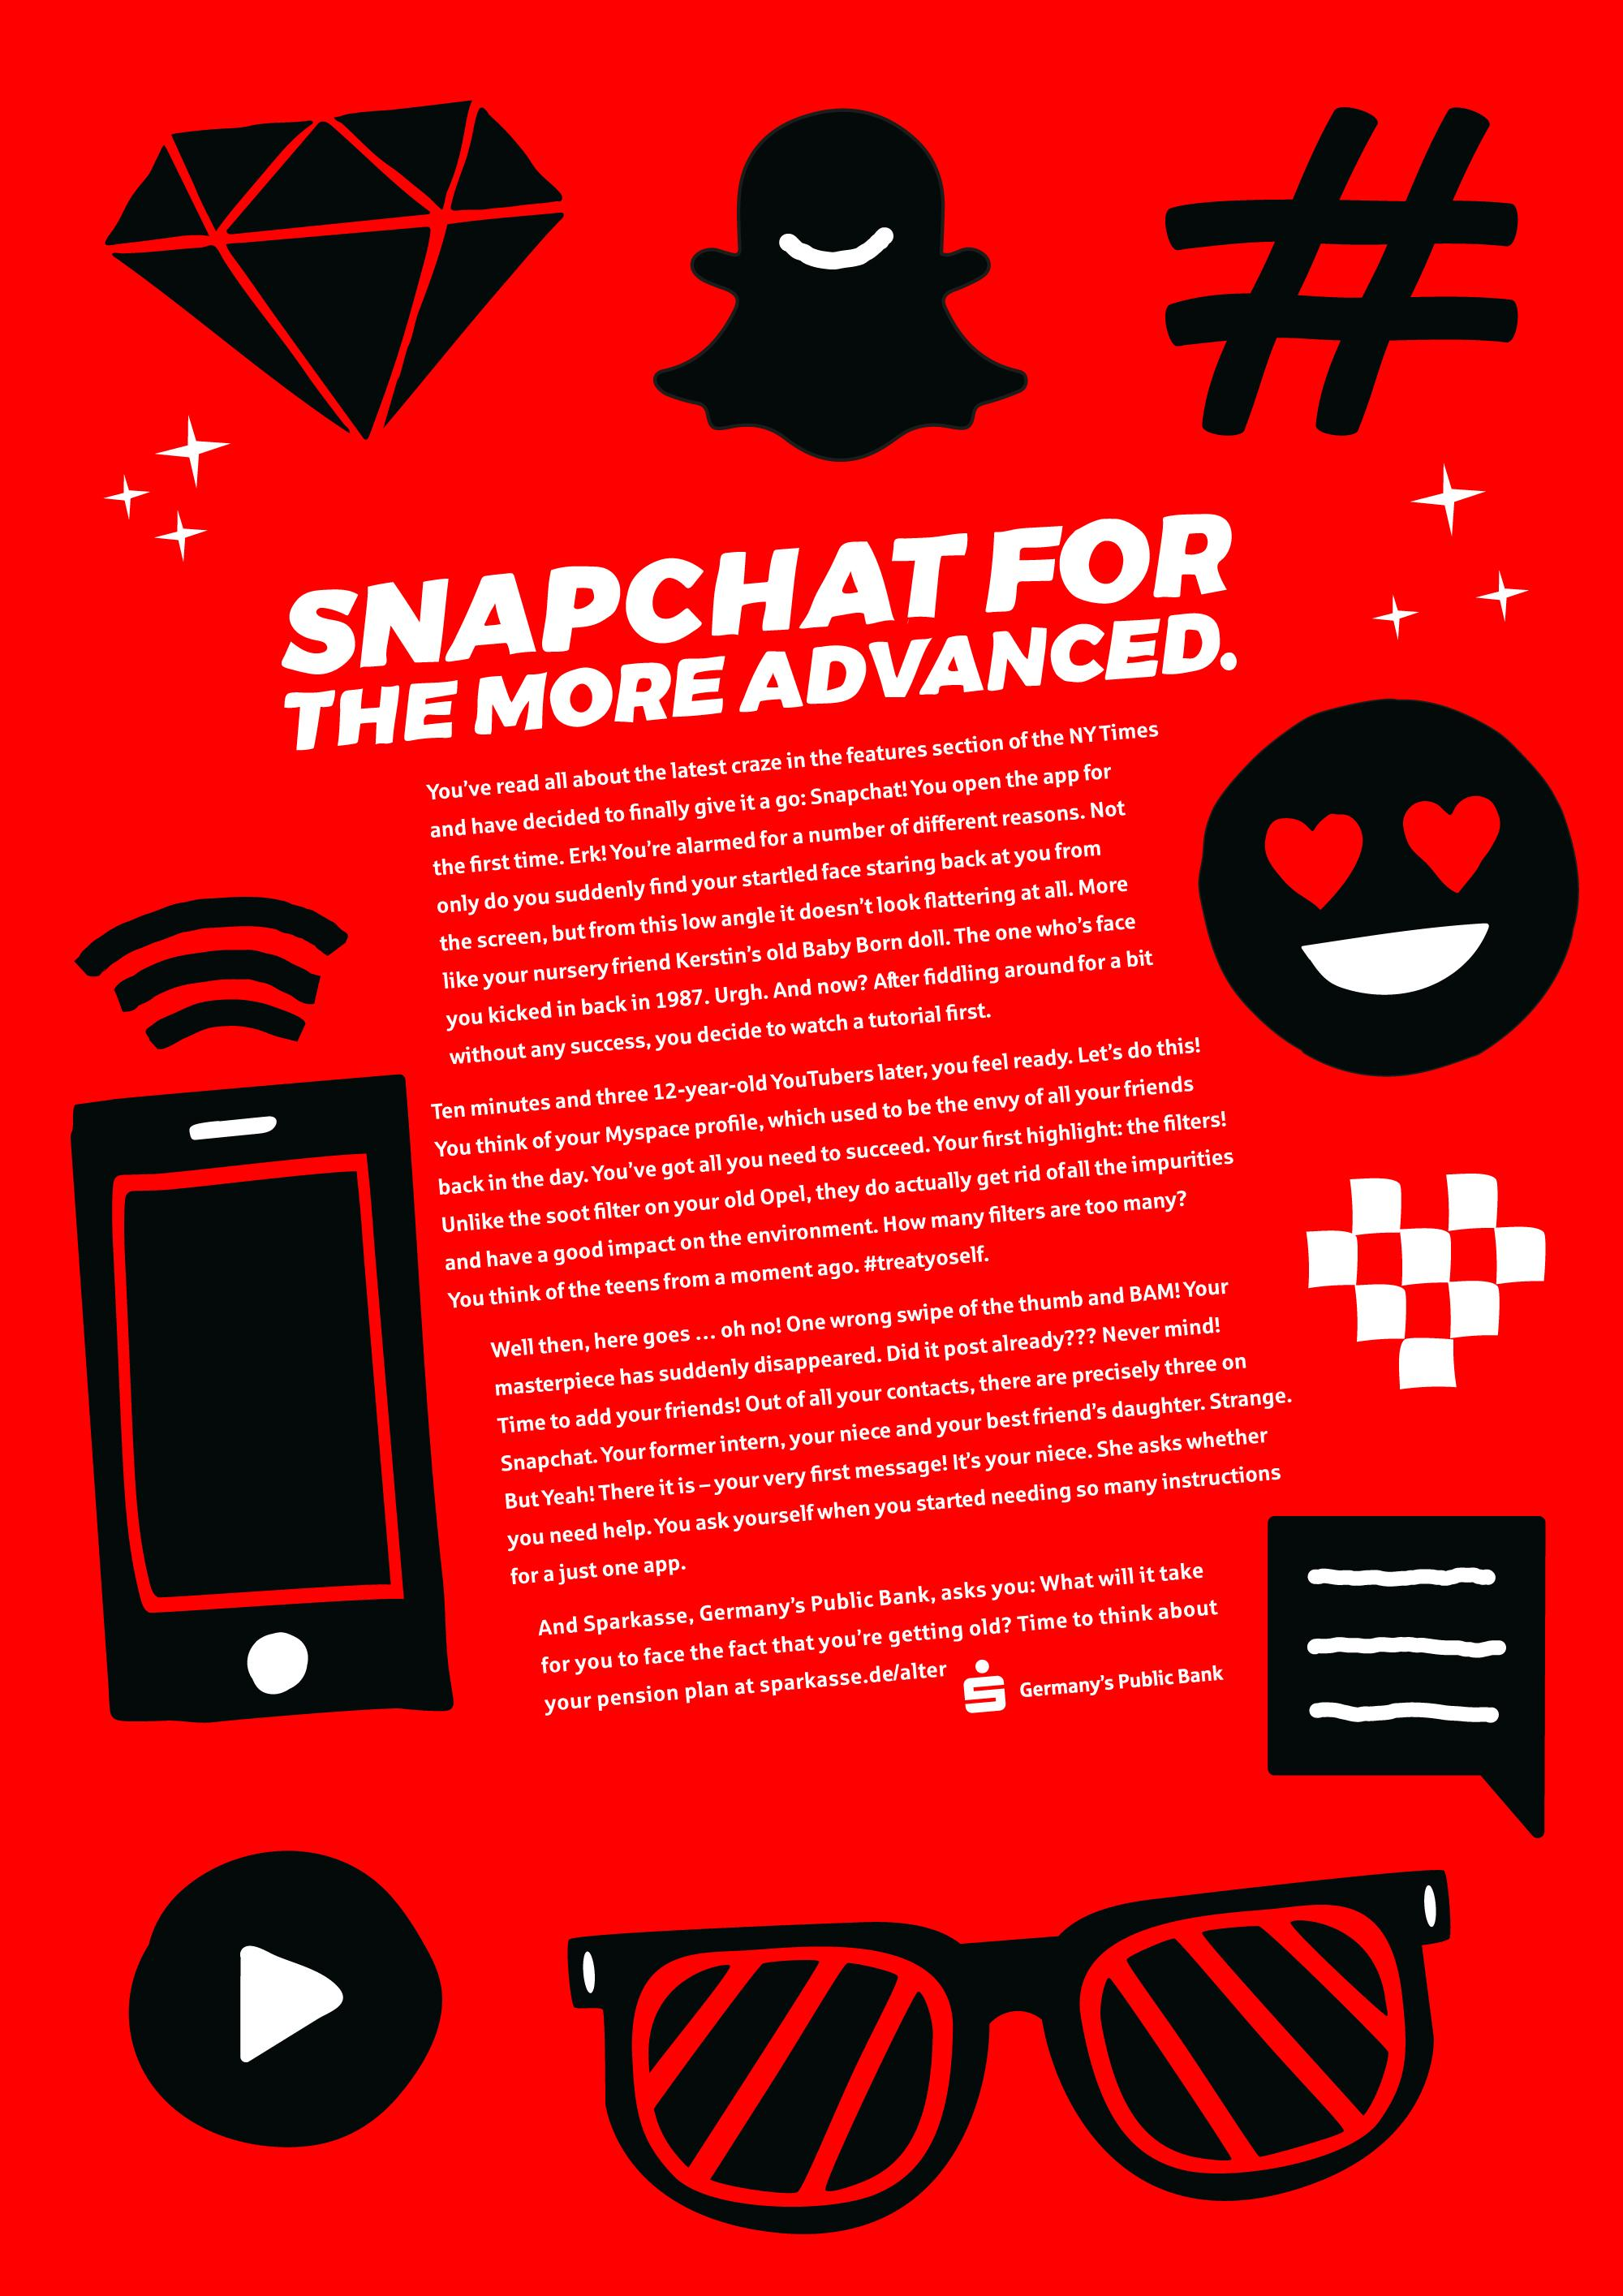 Sparkasse Print Ad - Getting Old - Snapchat